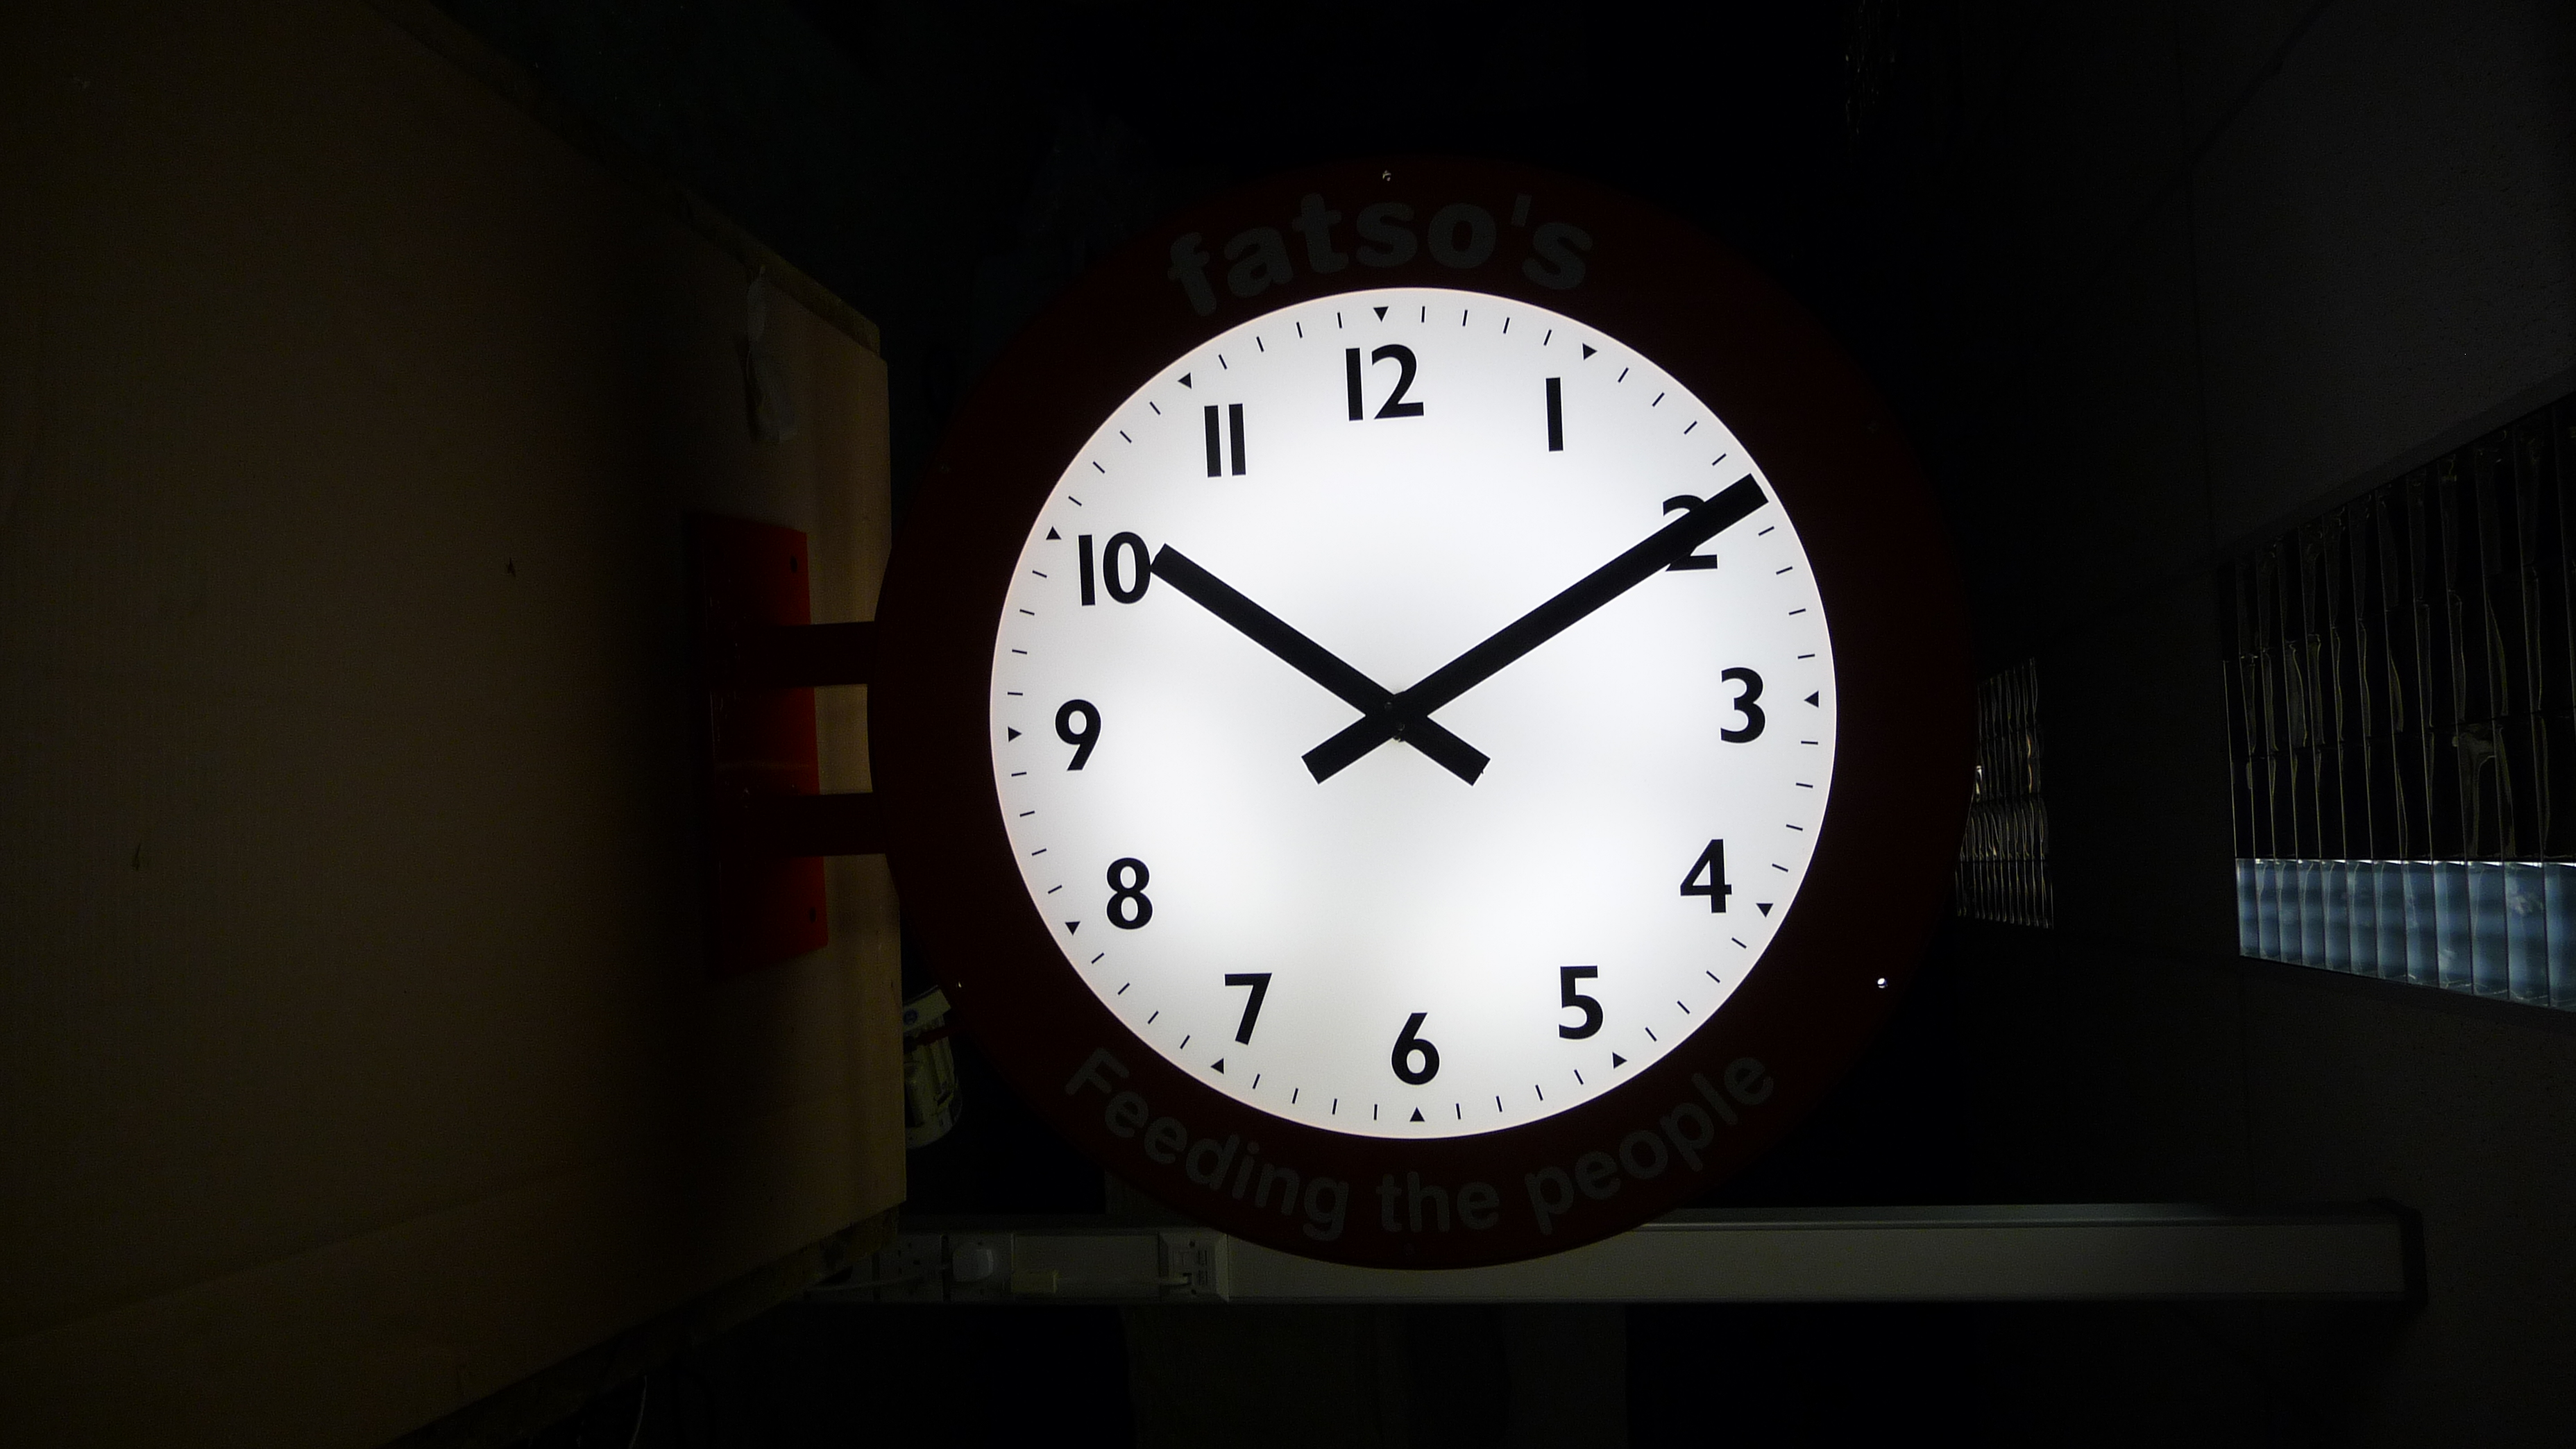 Large exterior clock back lit